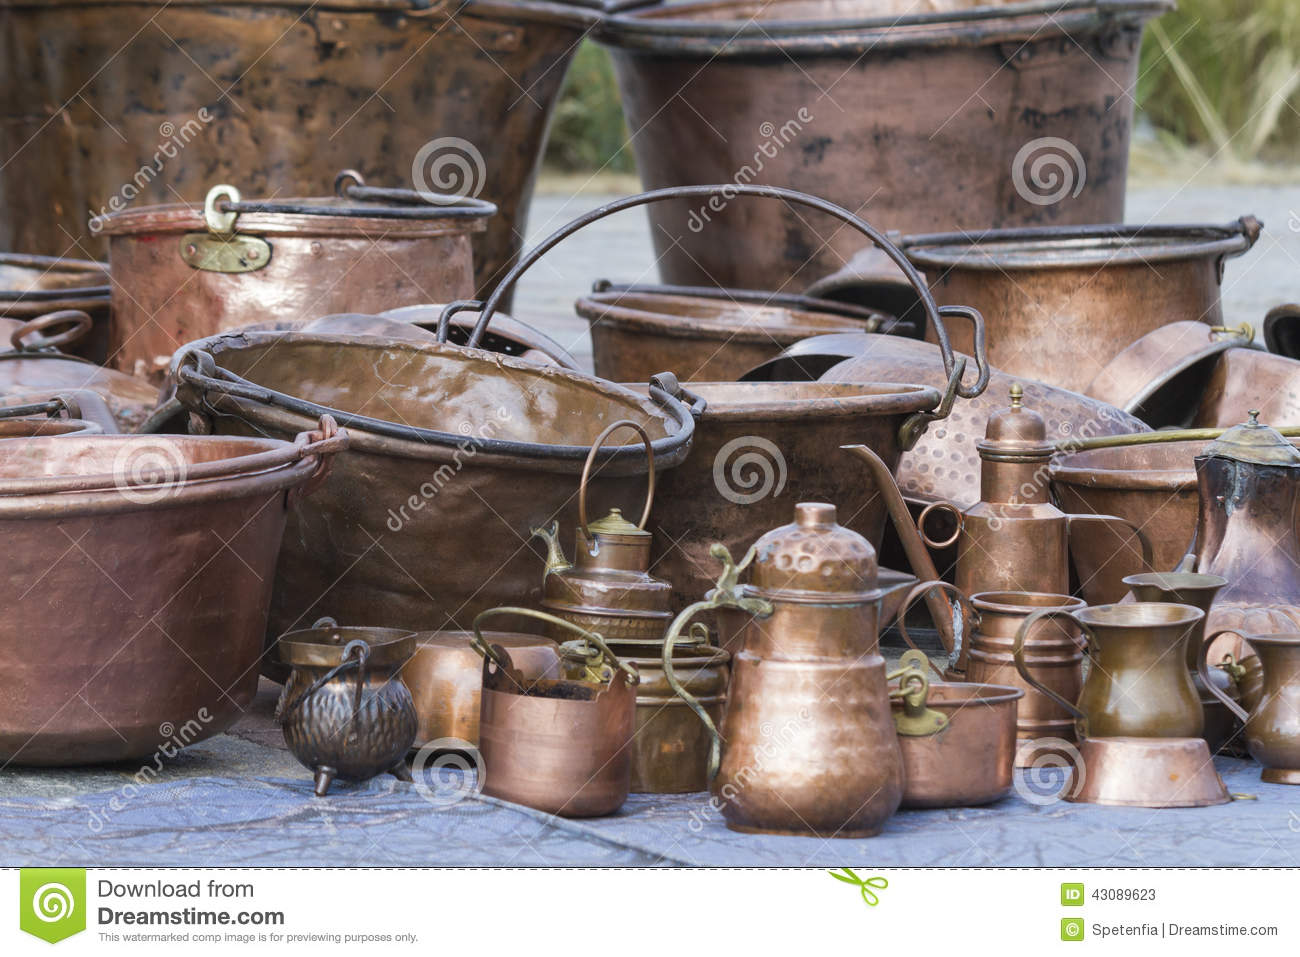 Old Pots And Pans Stock Photo - Image: 43089623